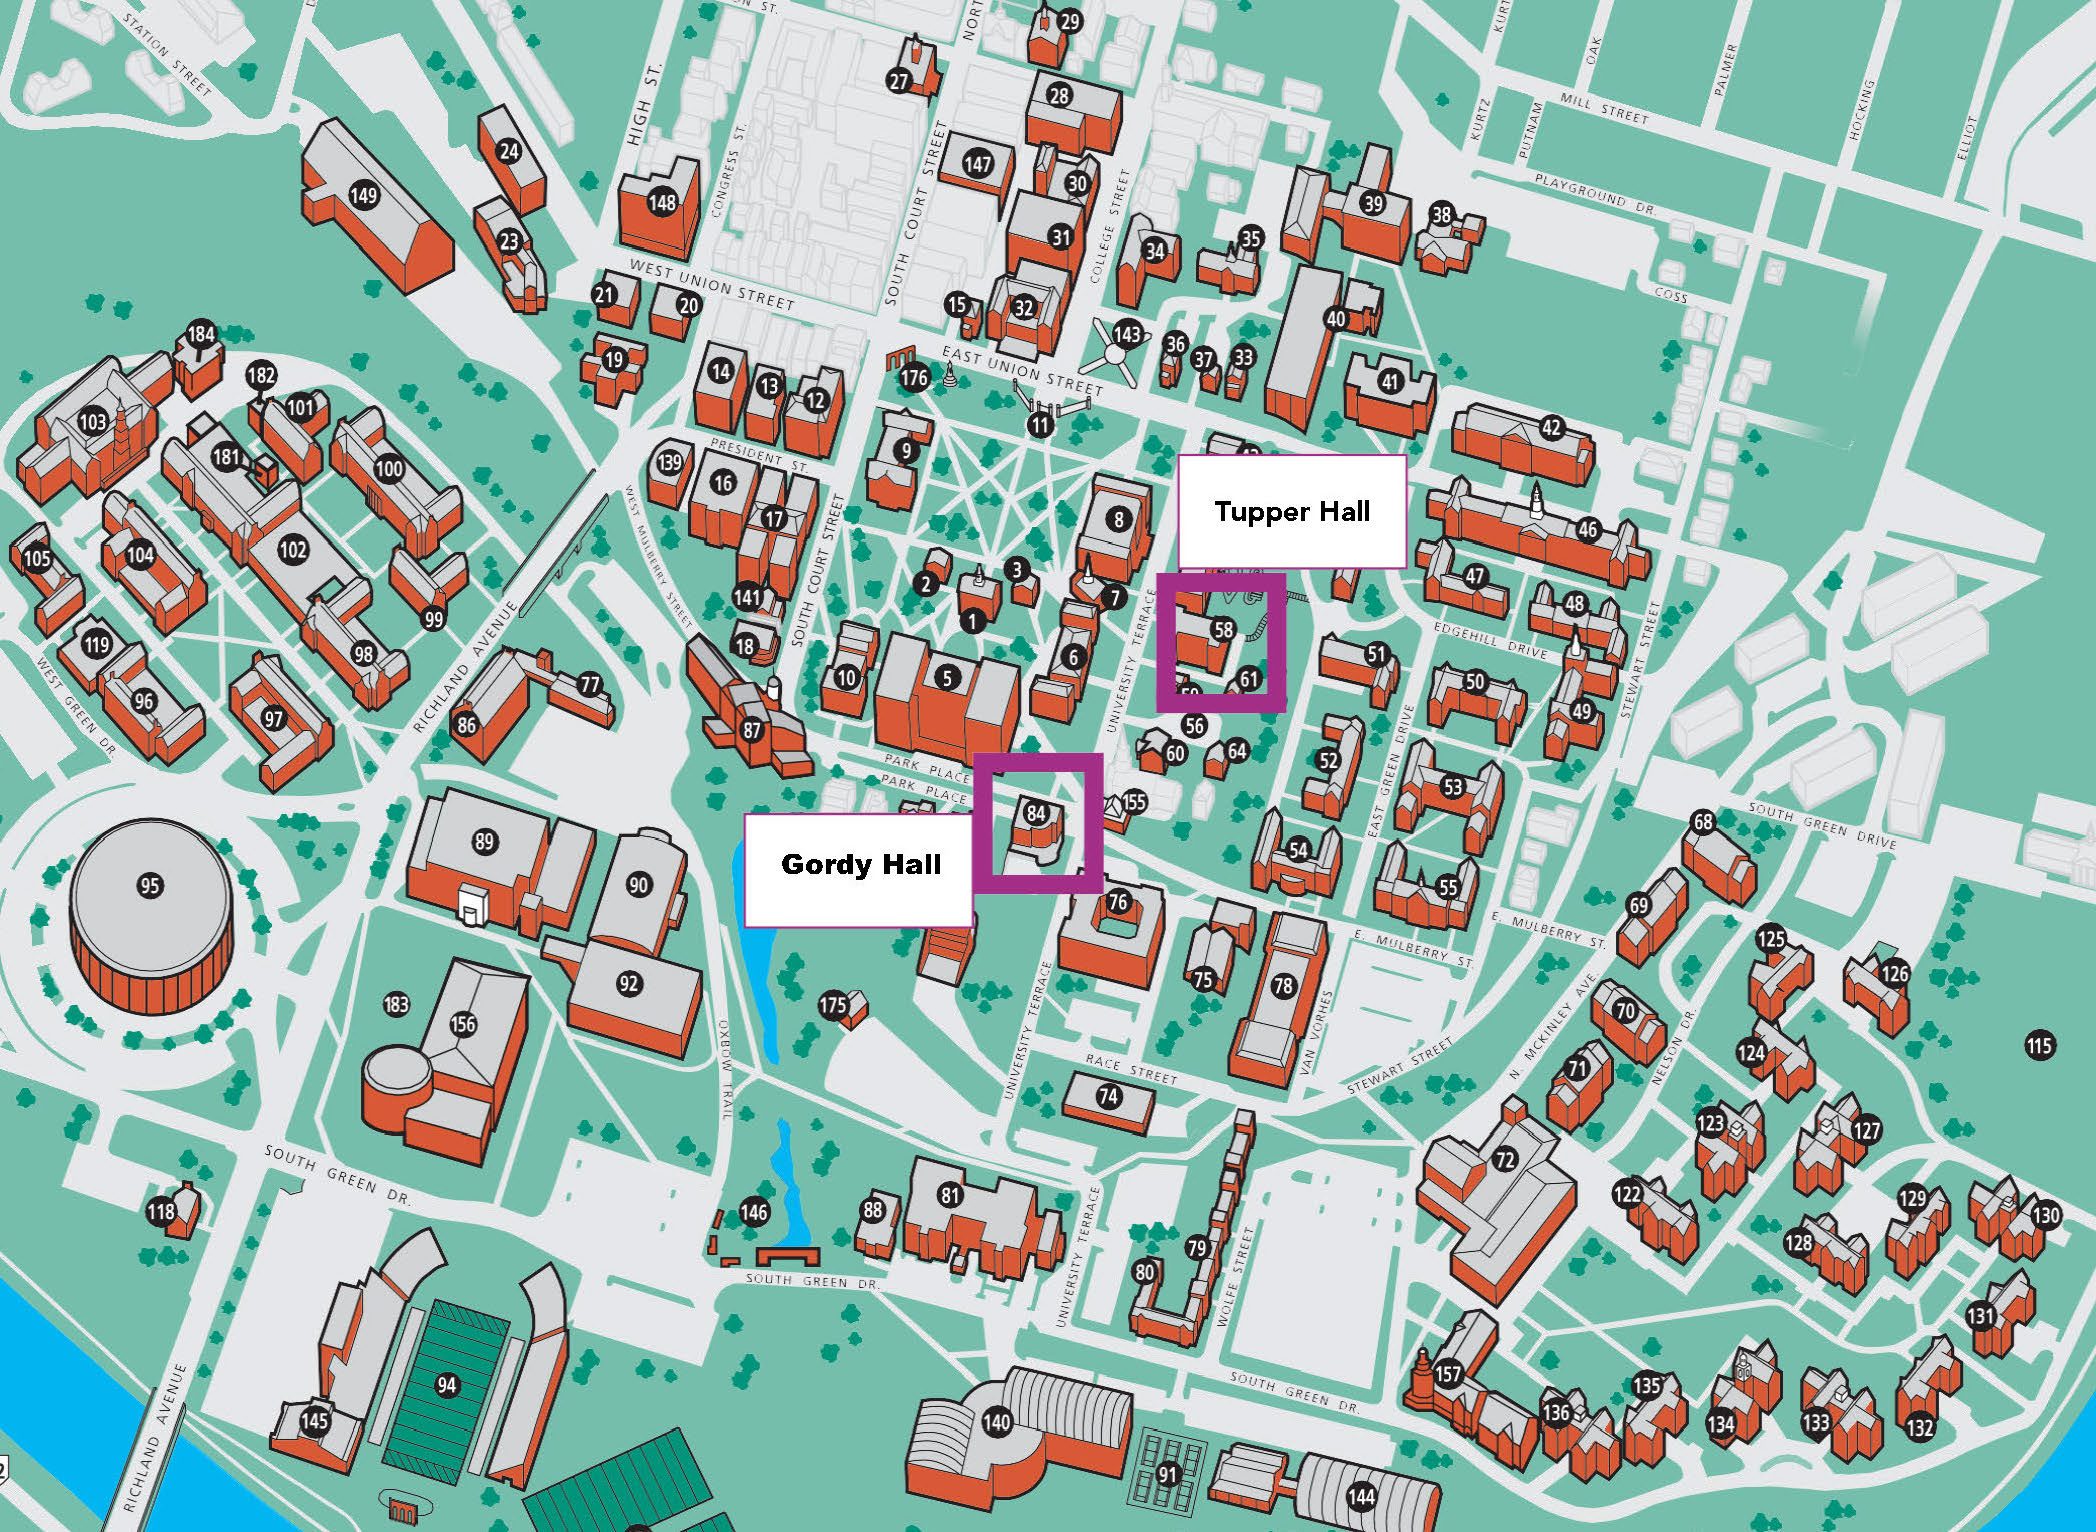 A map of Ohio University's campus that shows where Gordy Hall and Tupper Hall are located